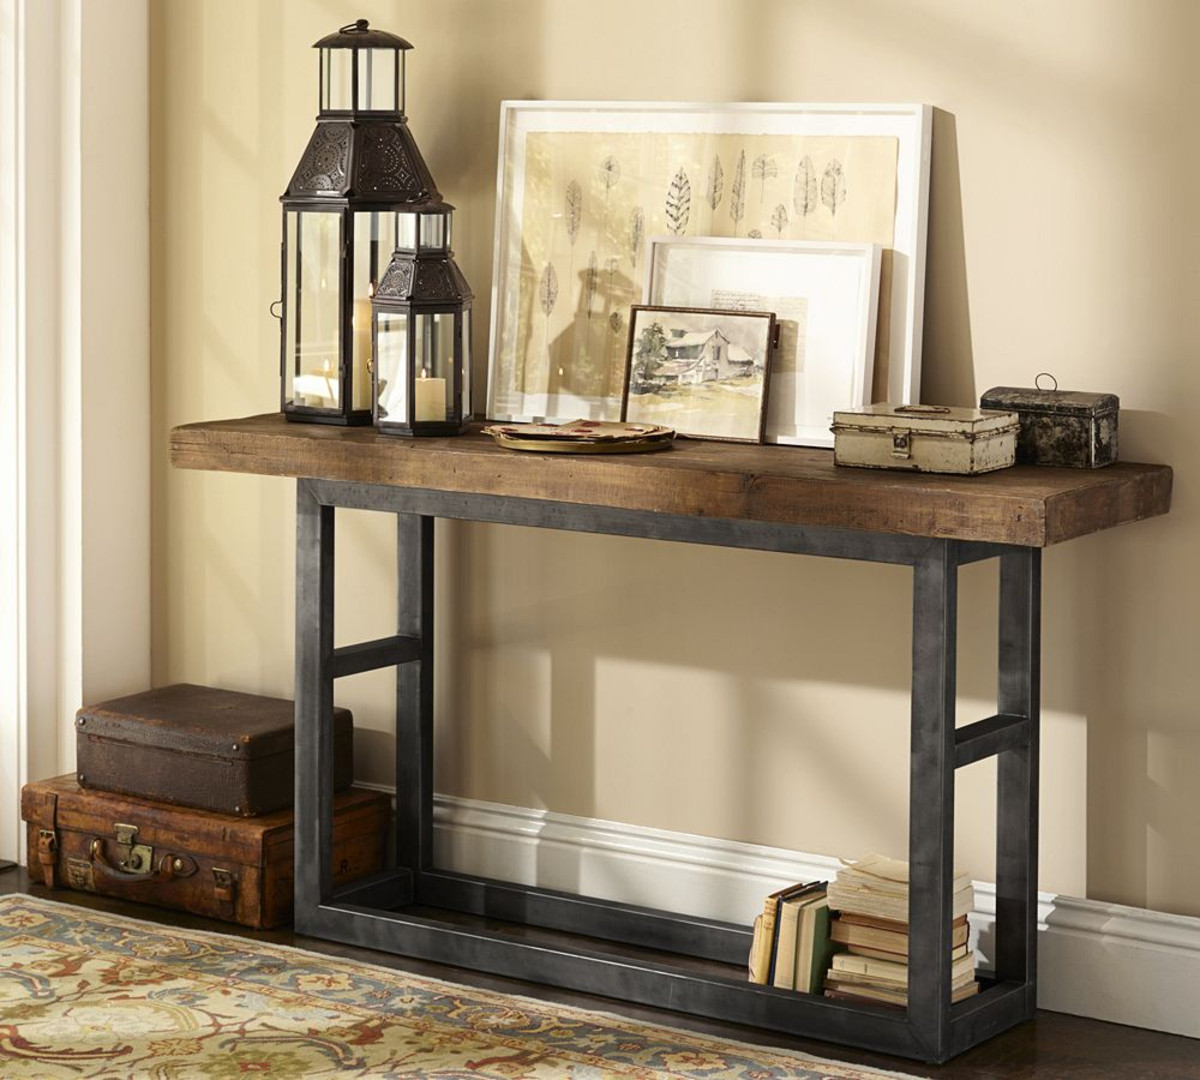 Best ideas about Entryway Console Table . Save or Pin Console Table Entryway Design — STABBEDINBACK Foyer Best Now.